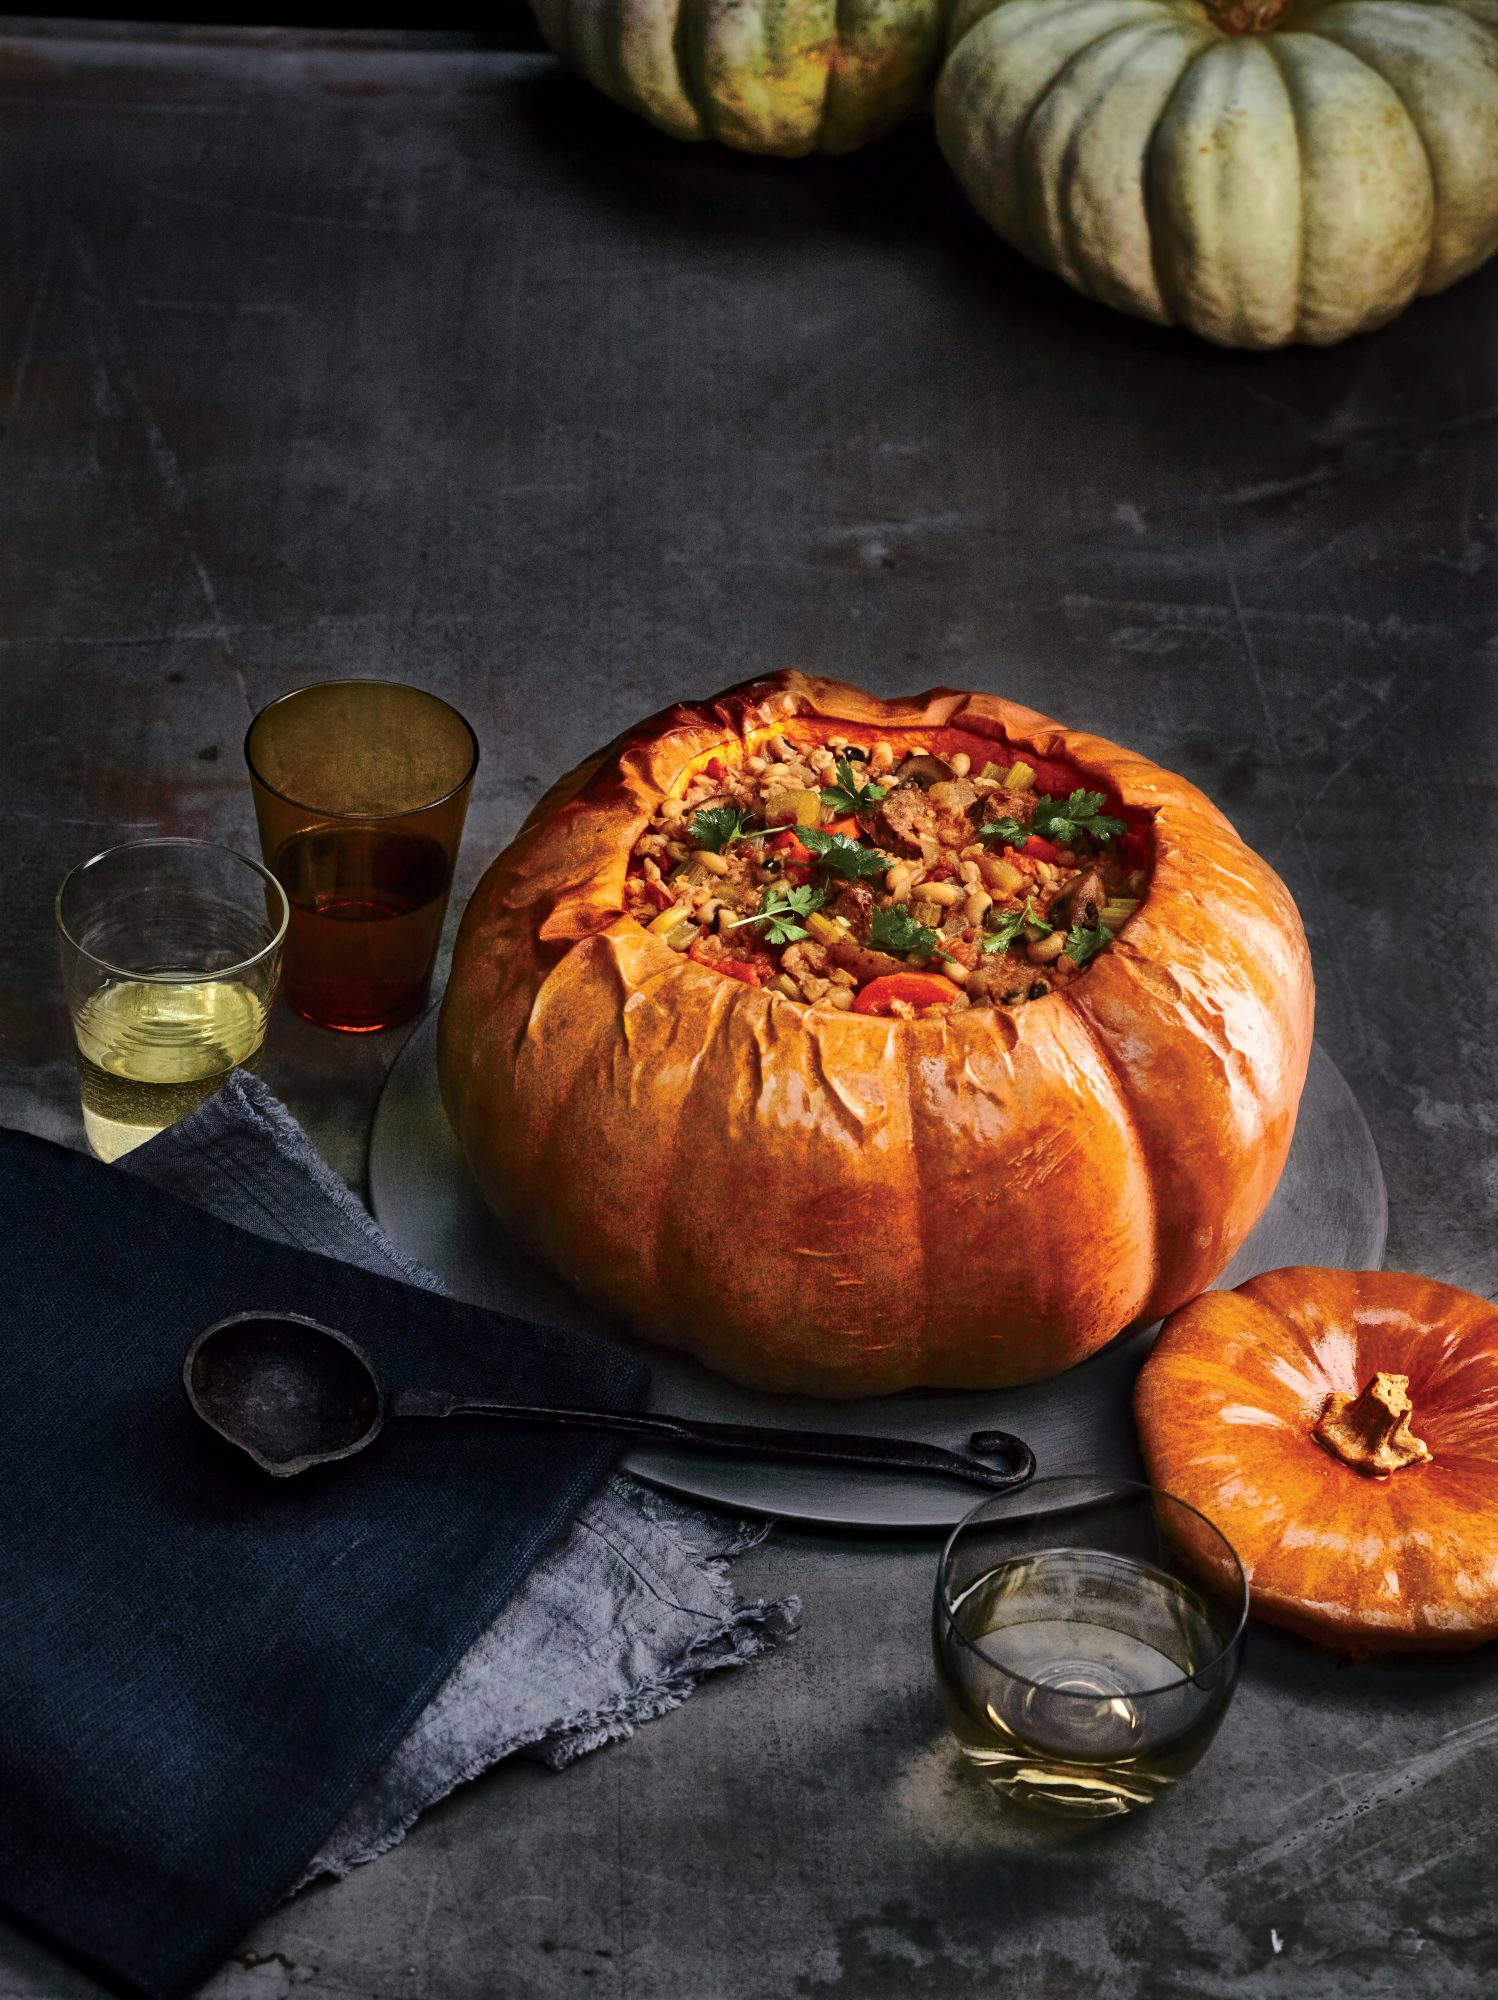 Whole Stuffed Roasted Pumpkin